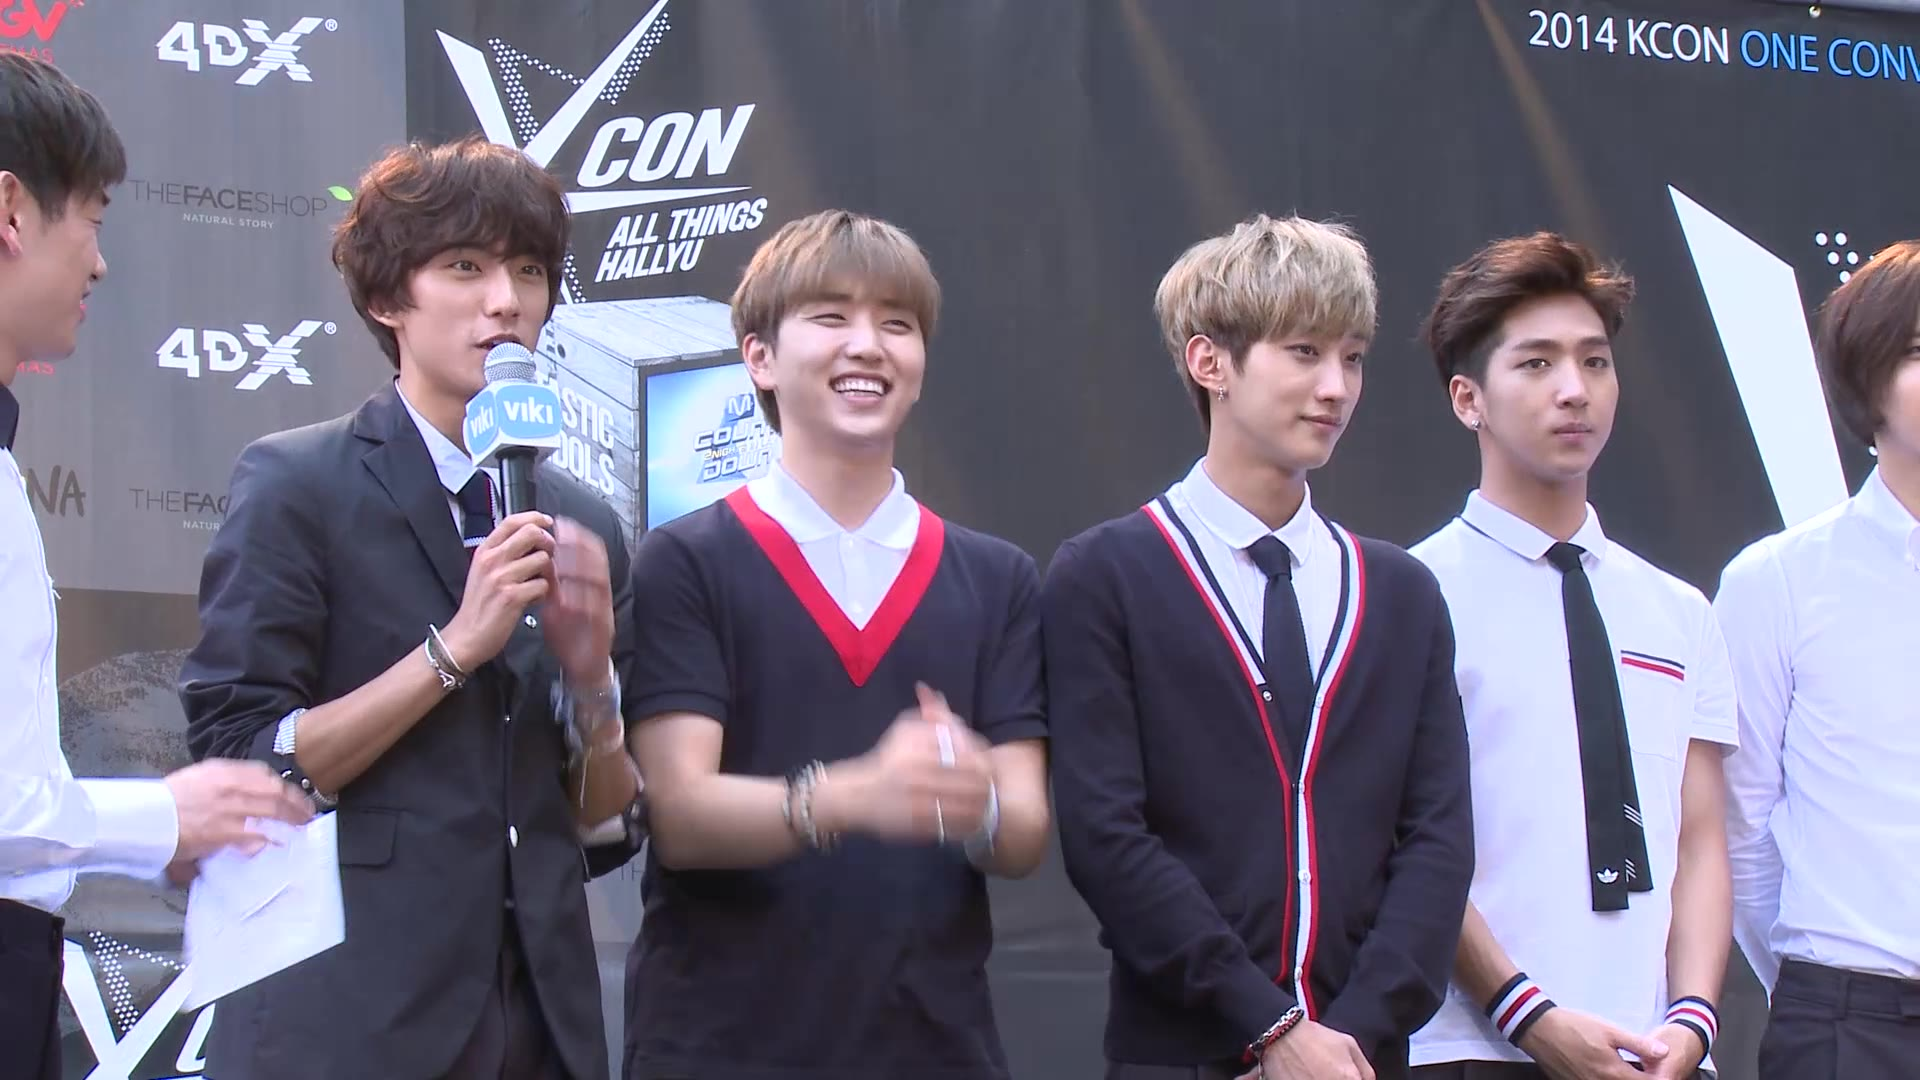 KCON 2014 Episode 6: B1A4 on the Red Carpet with Eric Nam